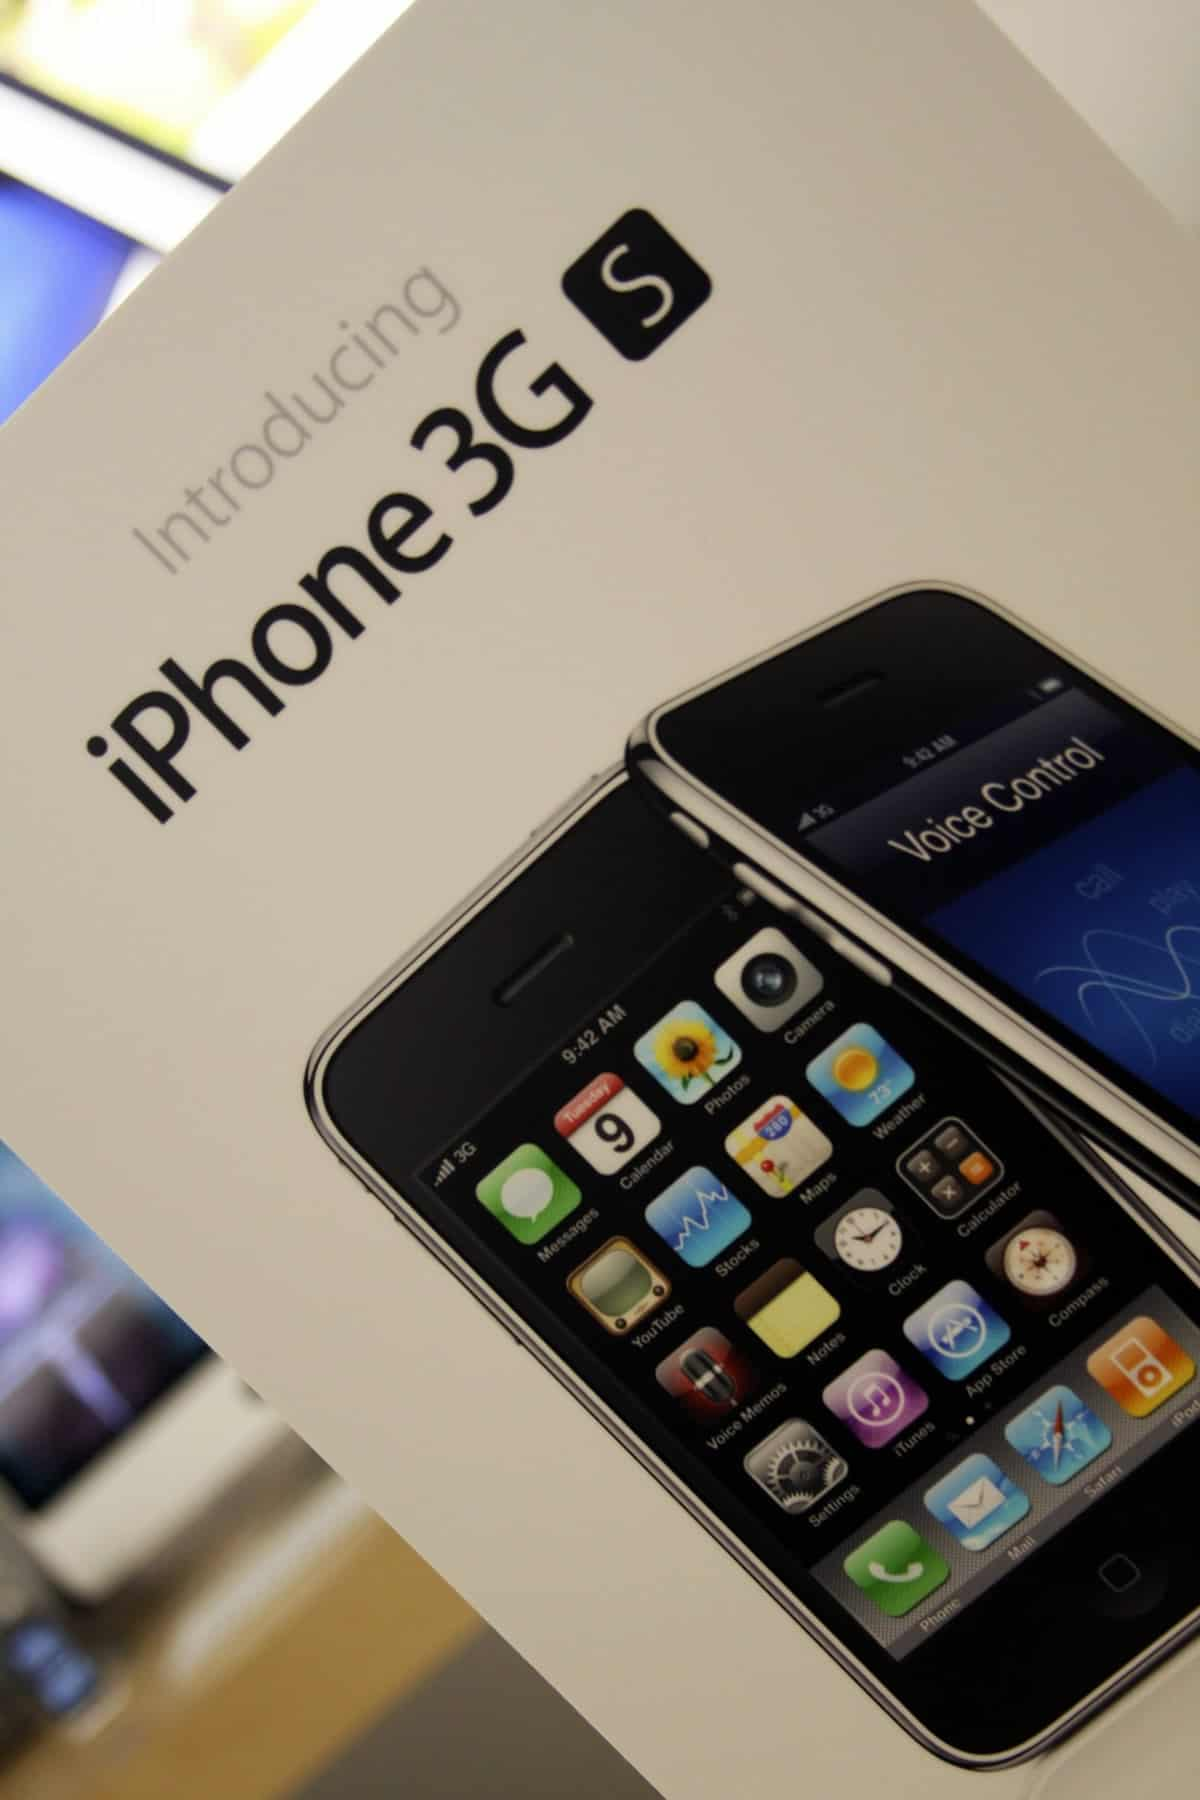 A close-up photo of an iPhone 3GS box.